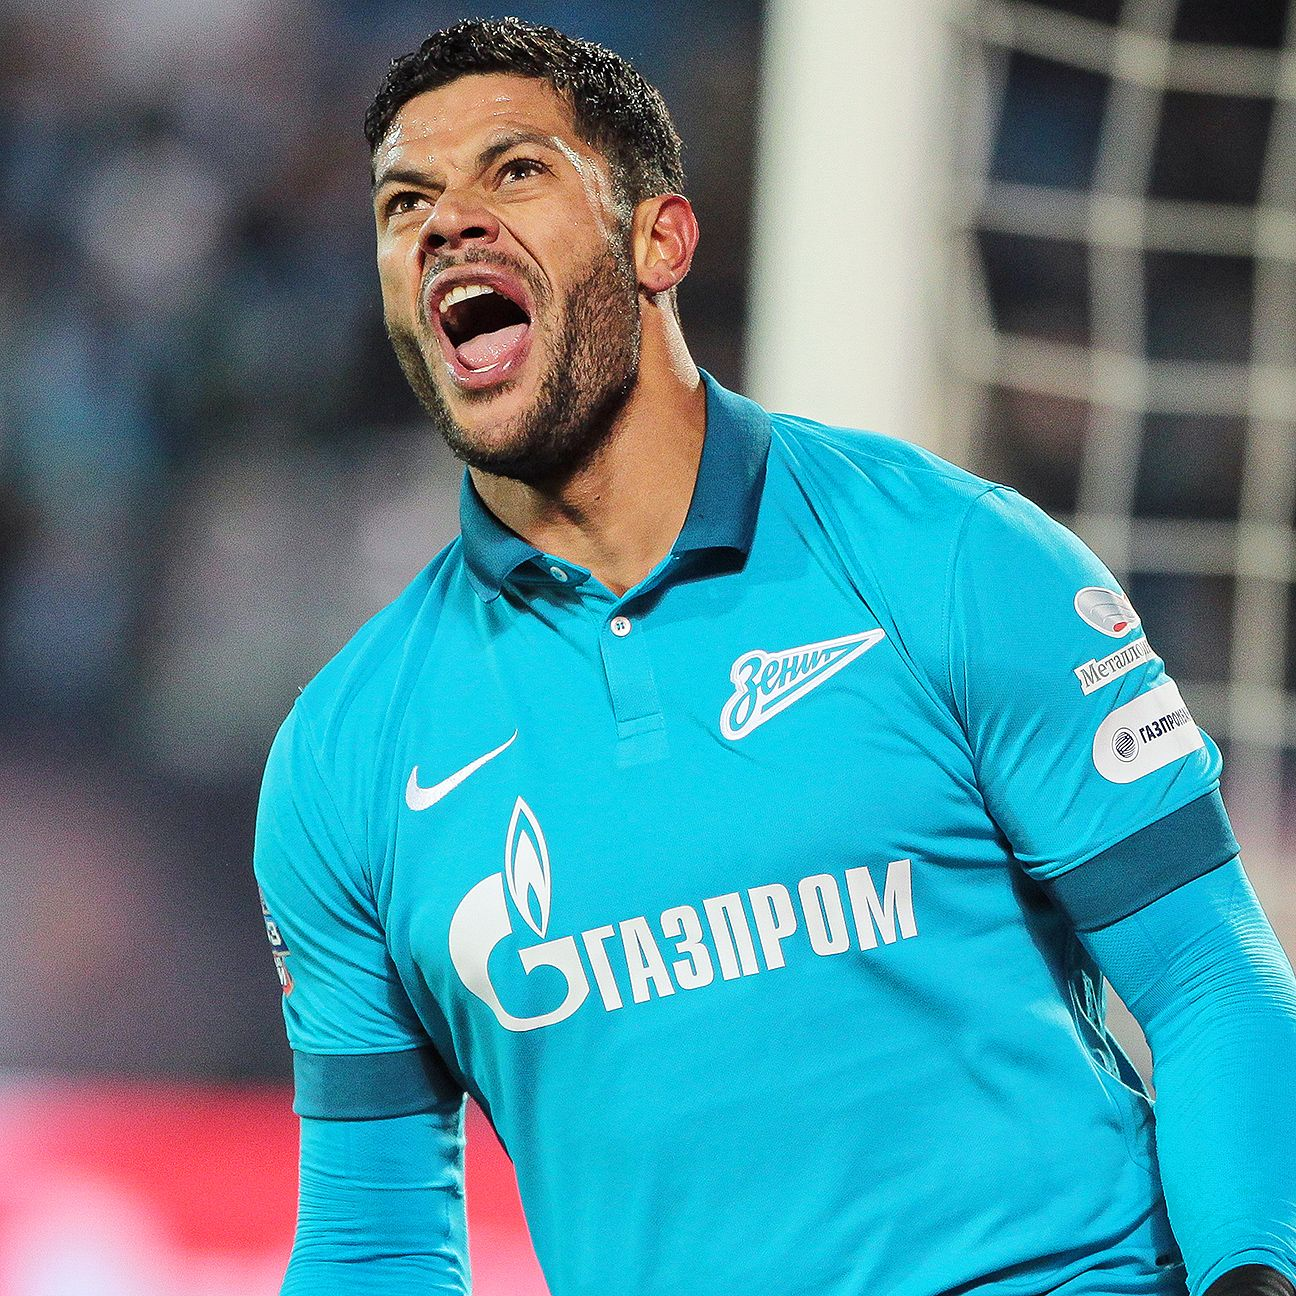 Hulk continues to astound in Zenit training sessions.